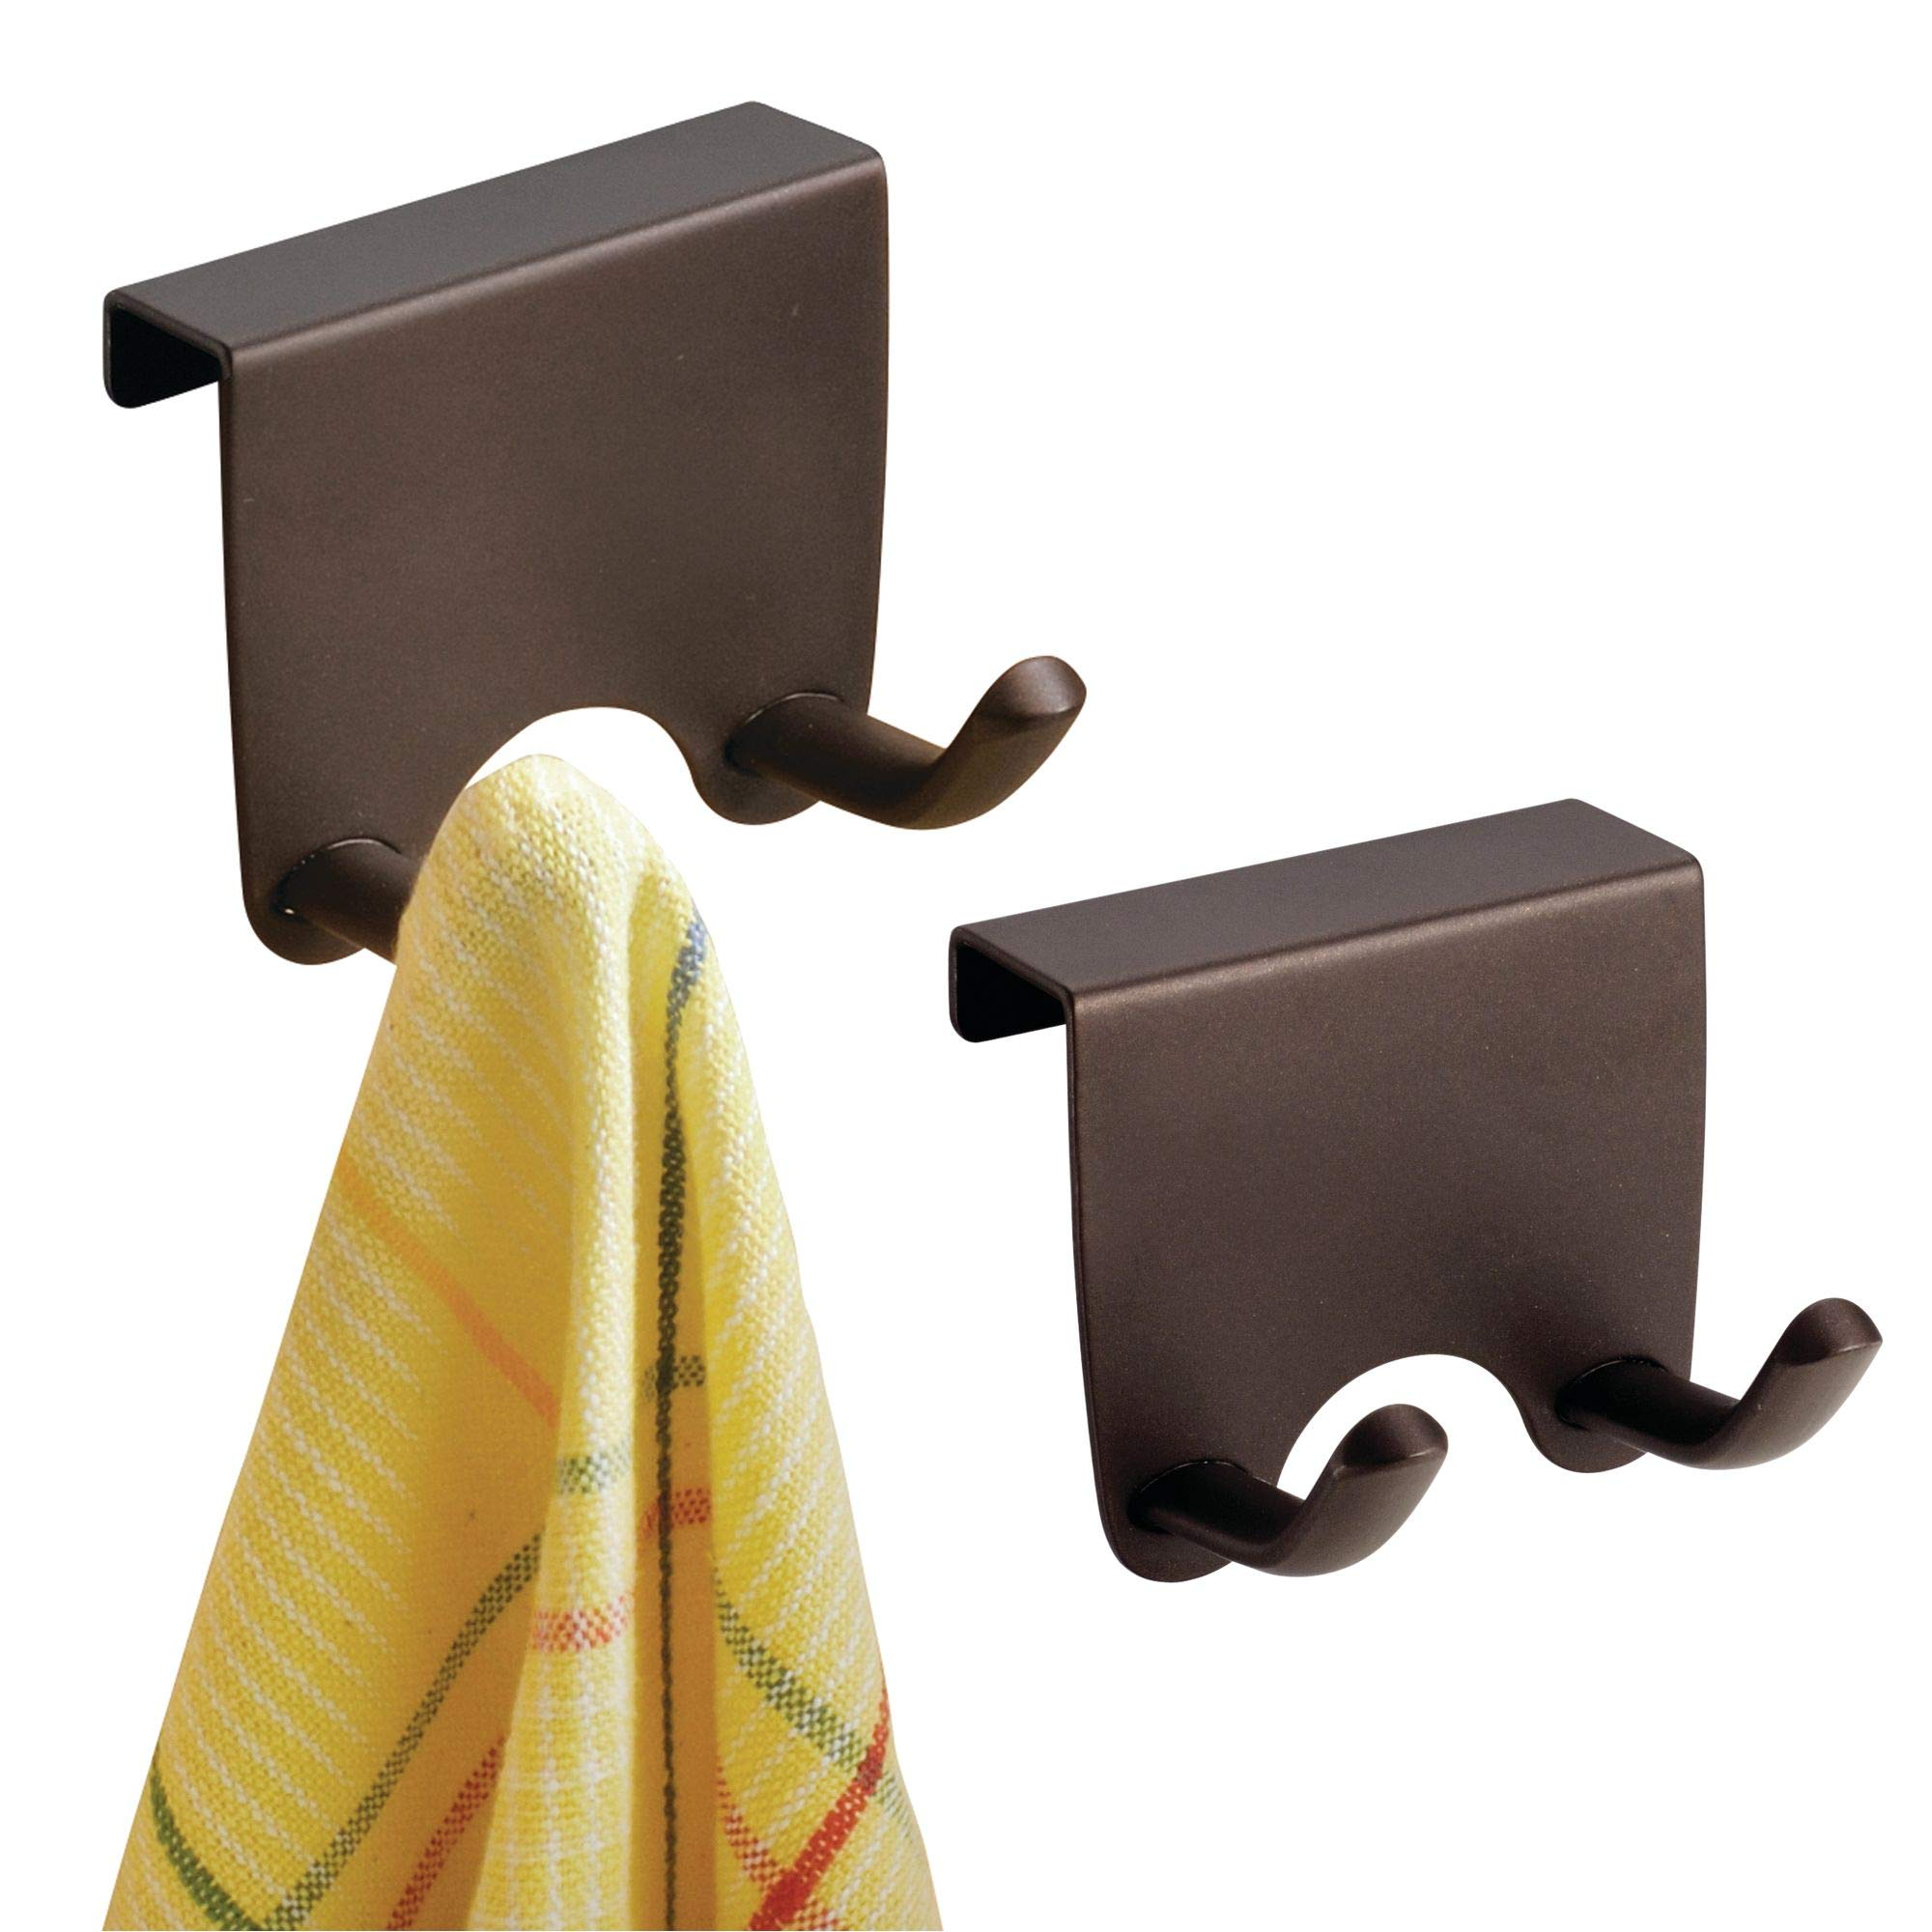 mDesign Over-the-Cabinet Kitchen Storage Hooks for Dish Towels or Pot Holders - Pack of 2, Bronze